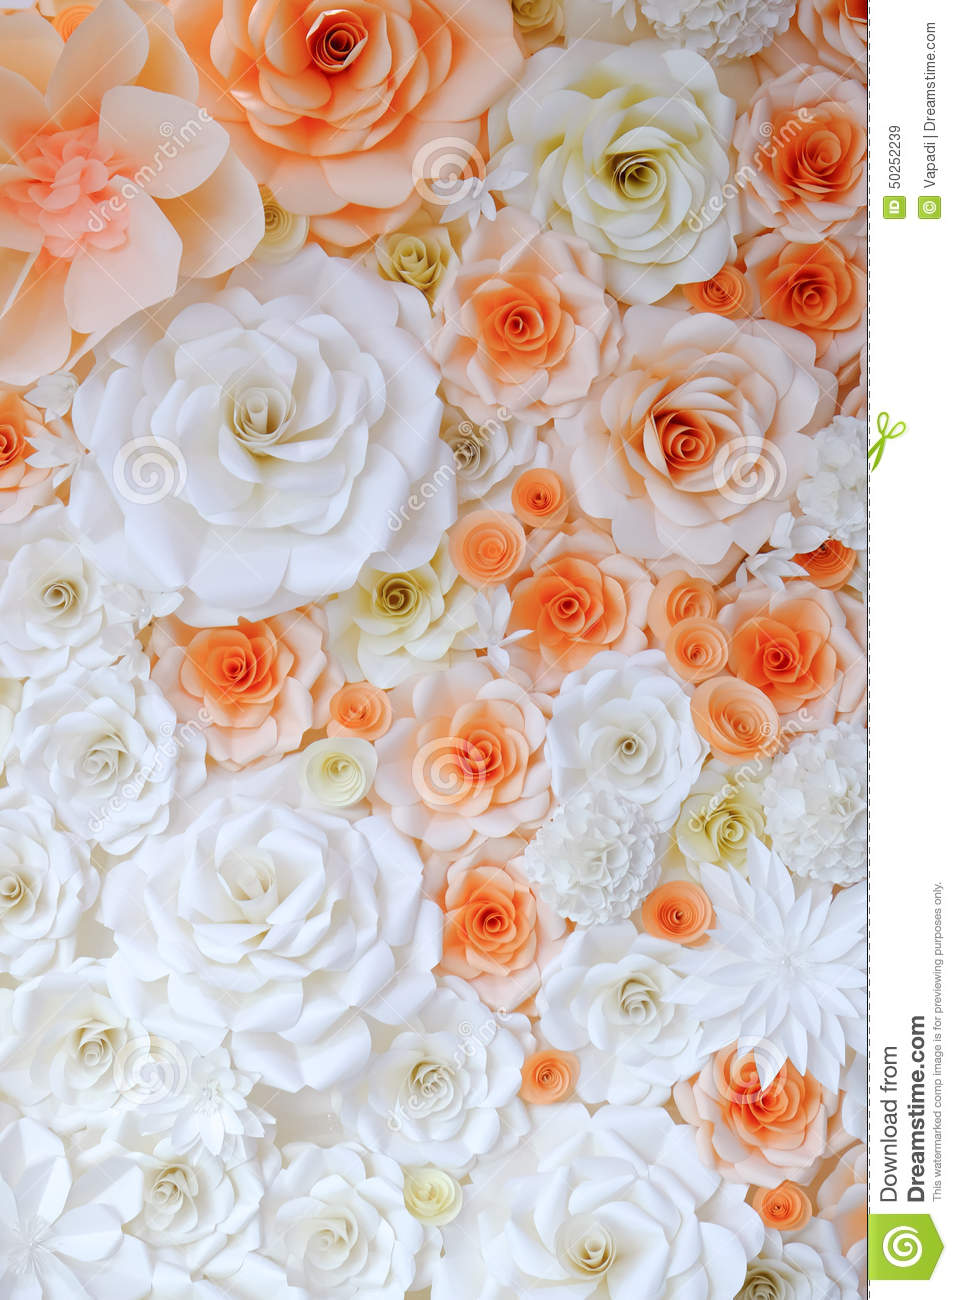 Background of paper folding flower stock image image of greeting background of paper folding flower mightylinksfo